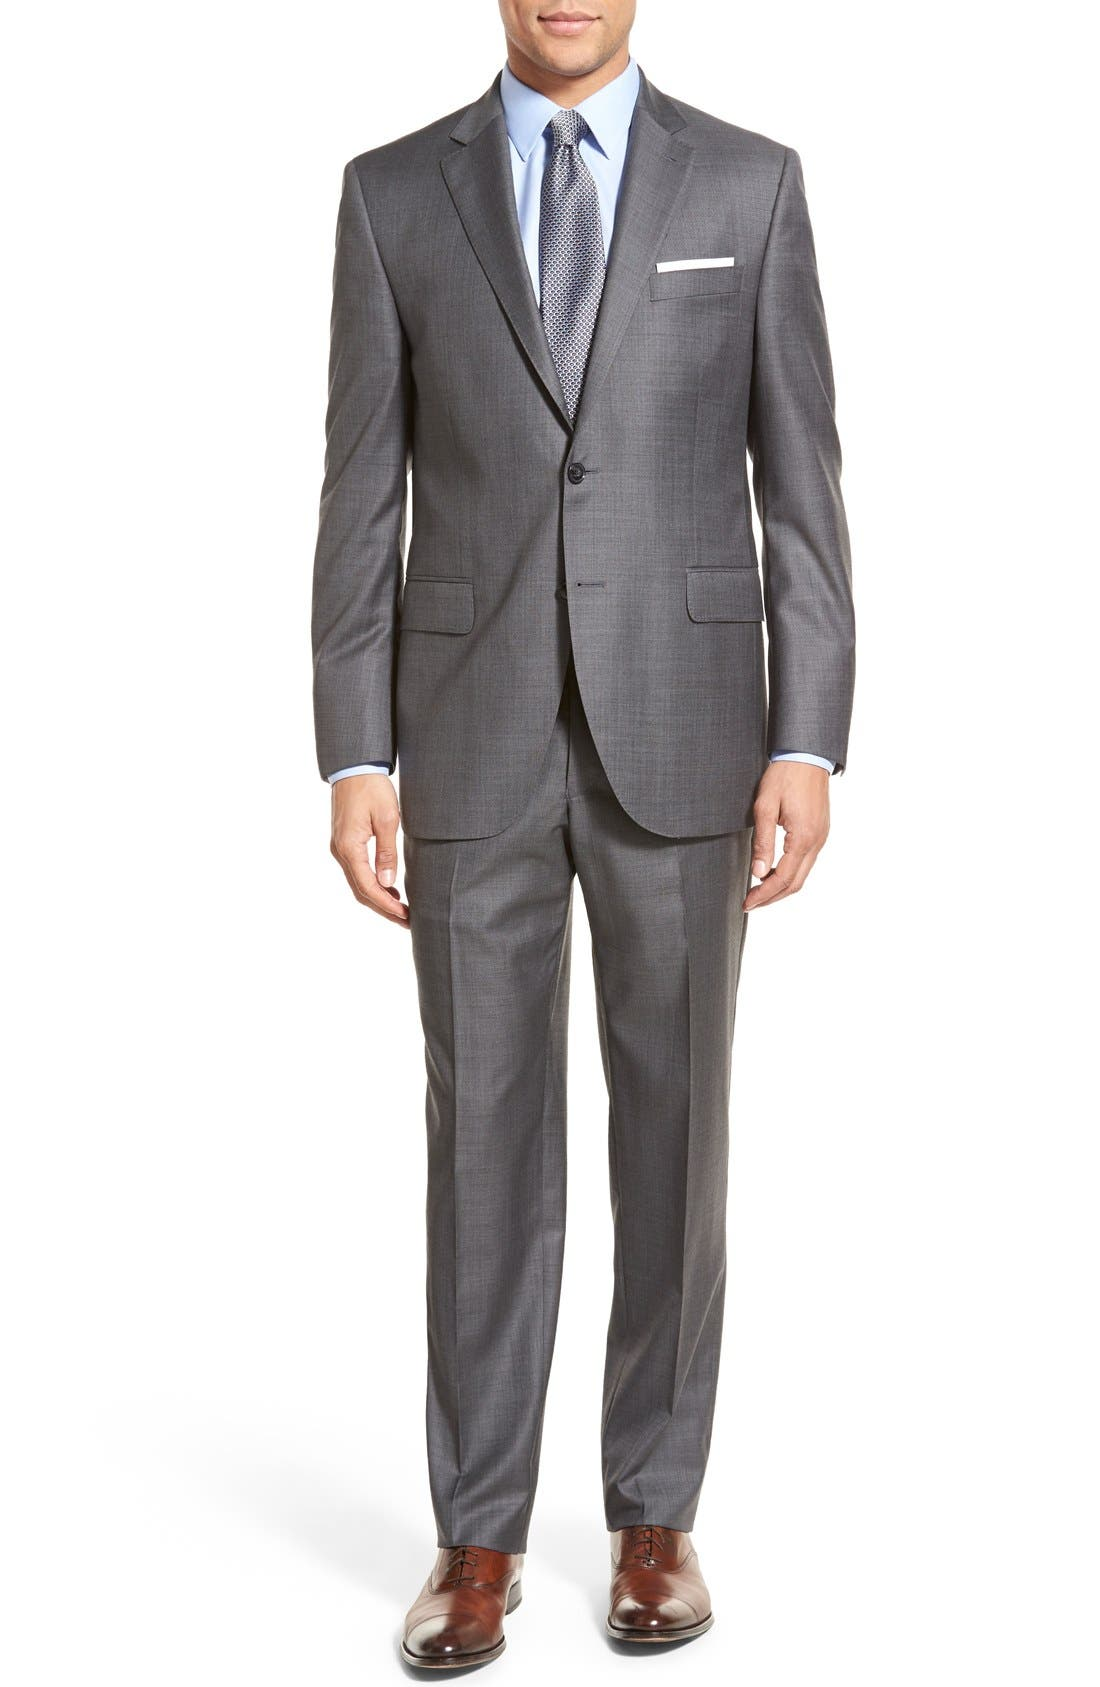 PETER MILLAR, Classic Fit Solid Wool Suit, Main thumbnail 1, color, CHARCOAL